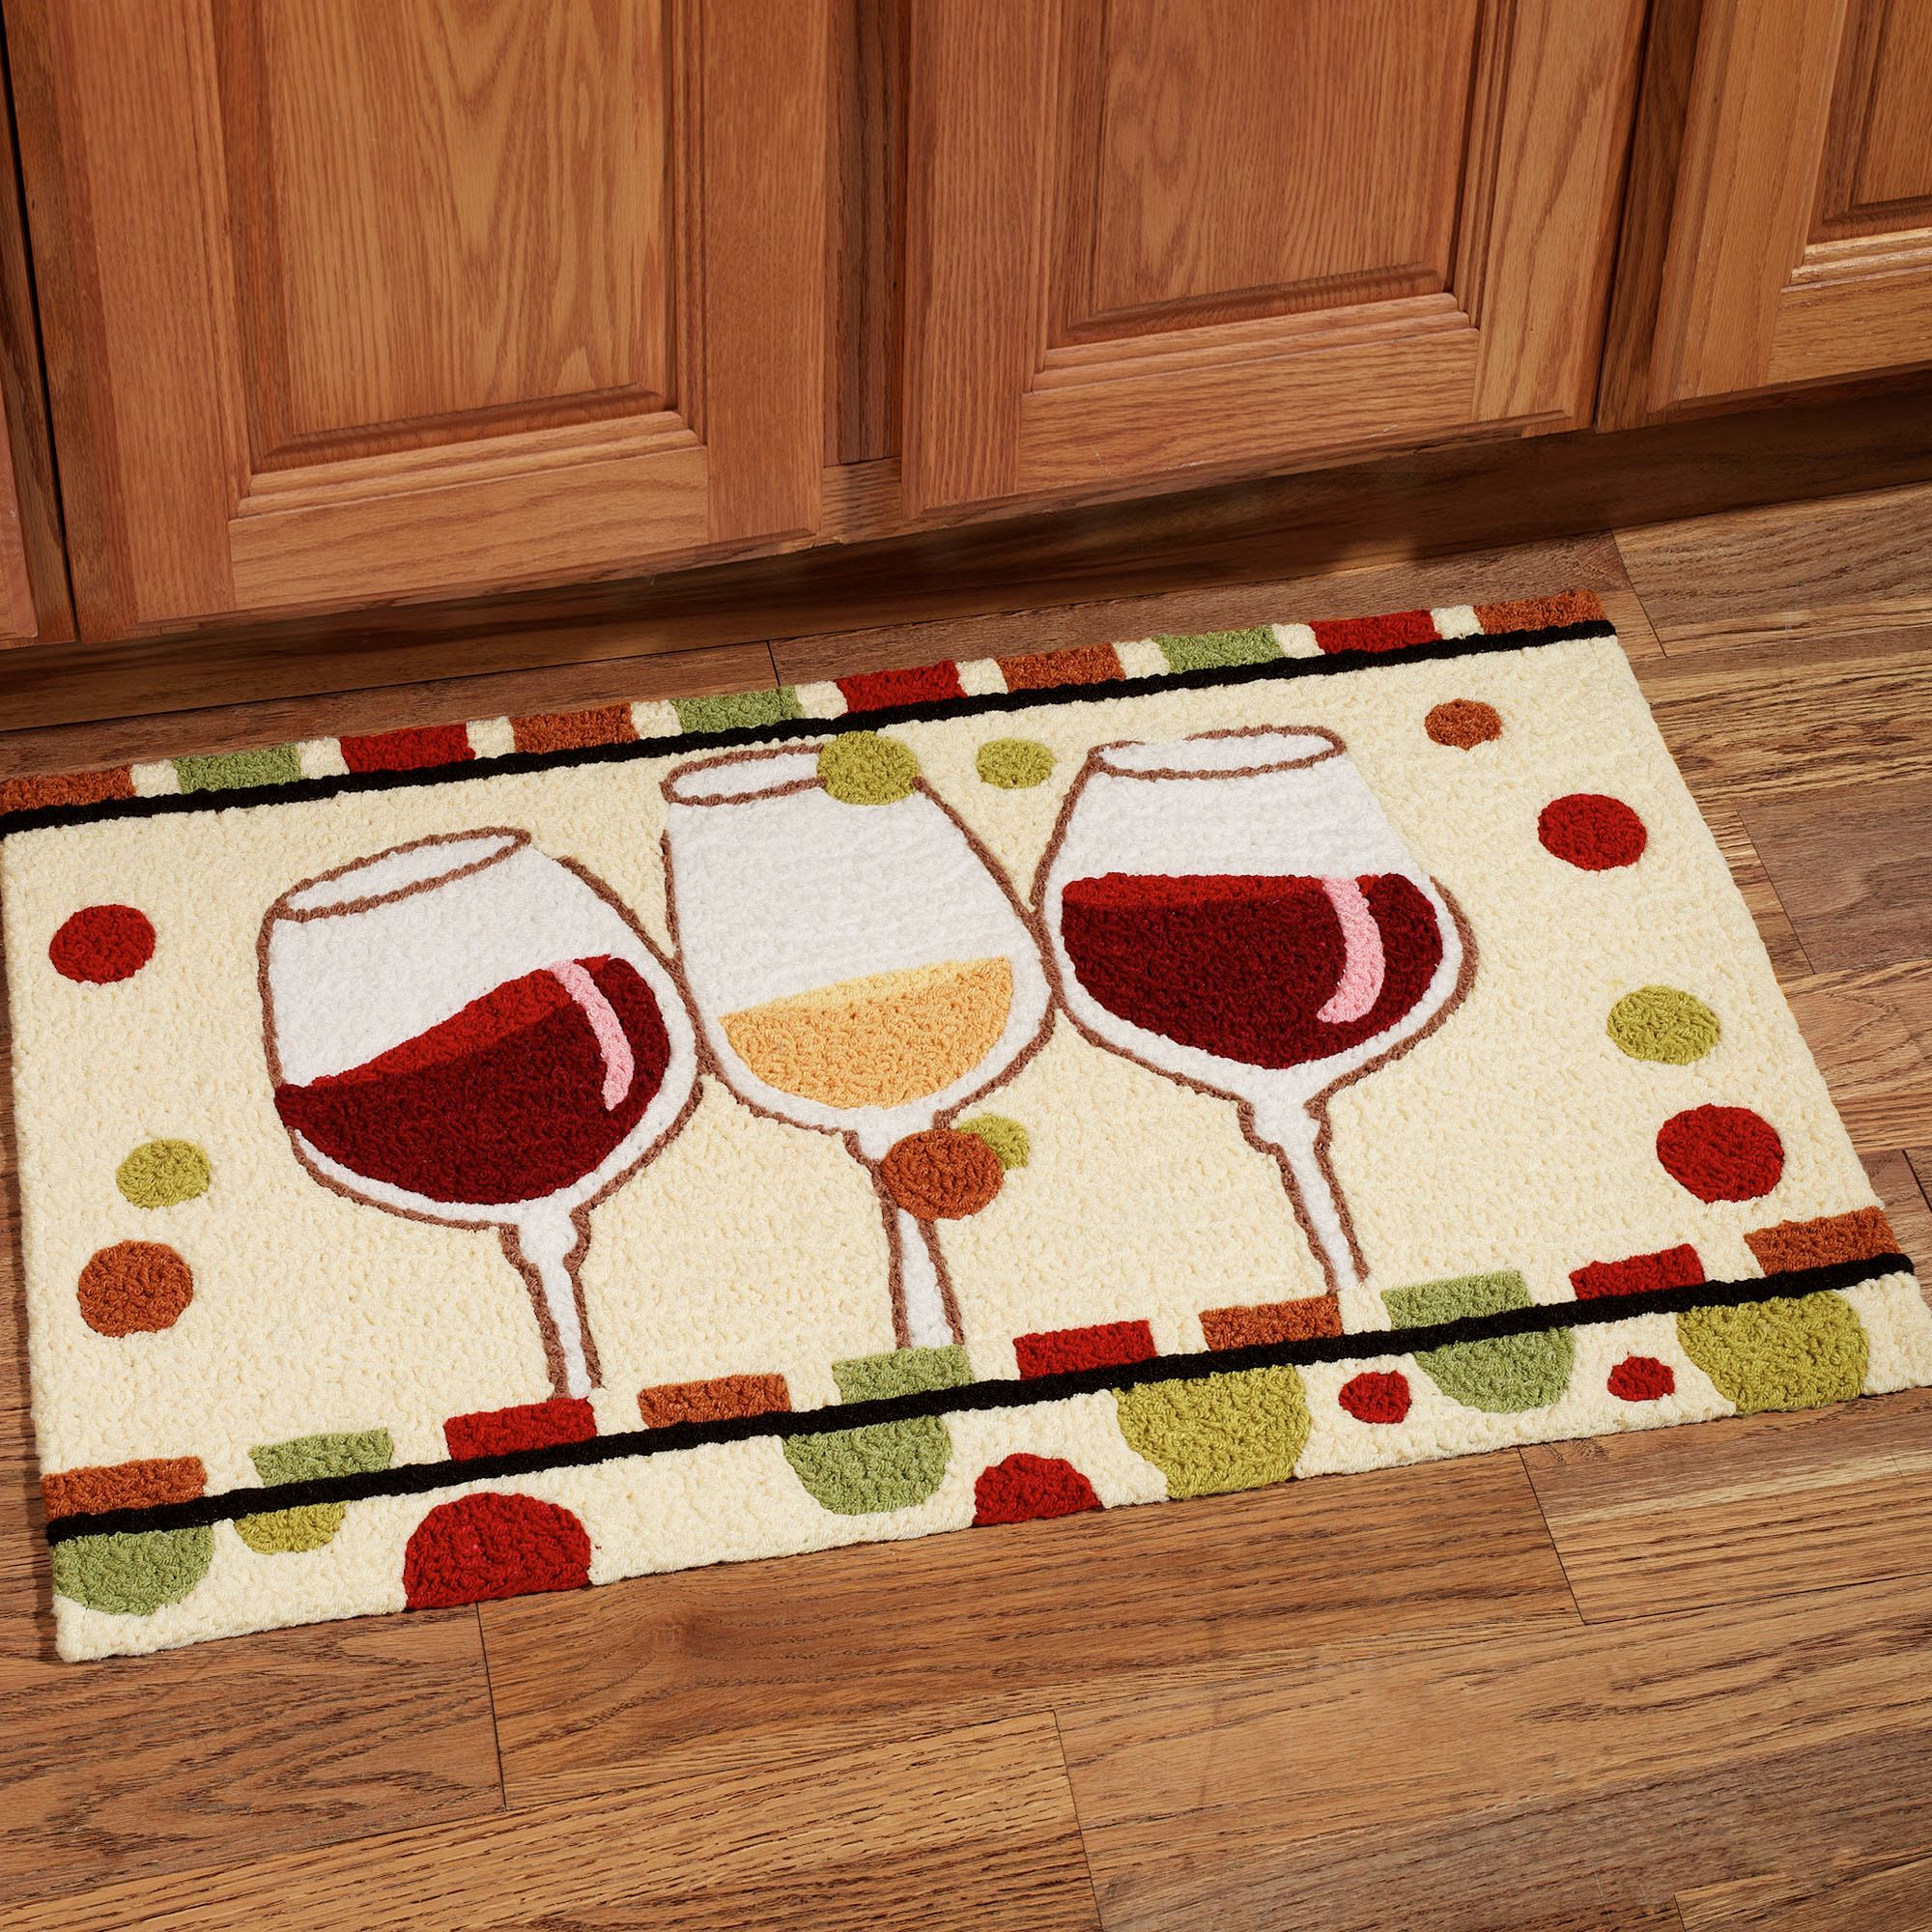 new washable and mats incredible carpet cushioned skid machine rug entity high rugs kitchen soft door trends non